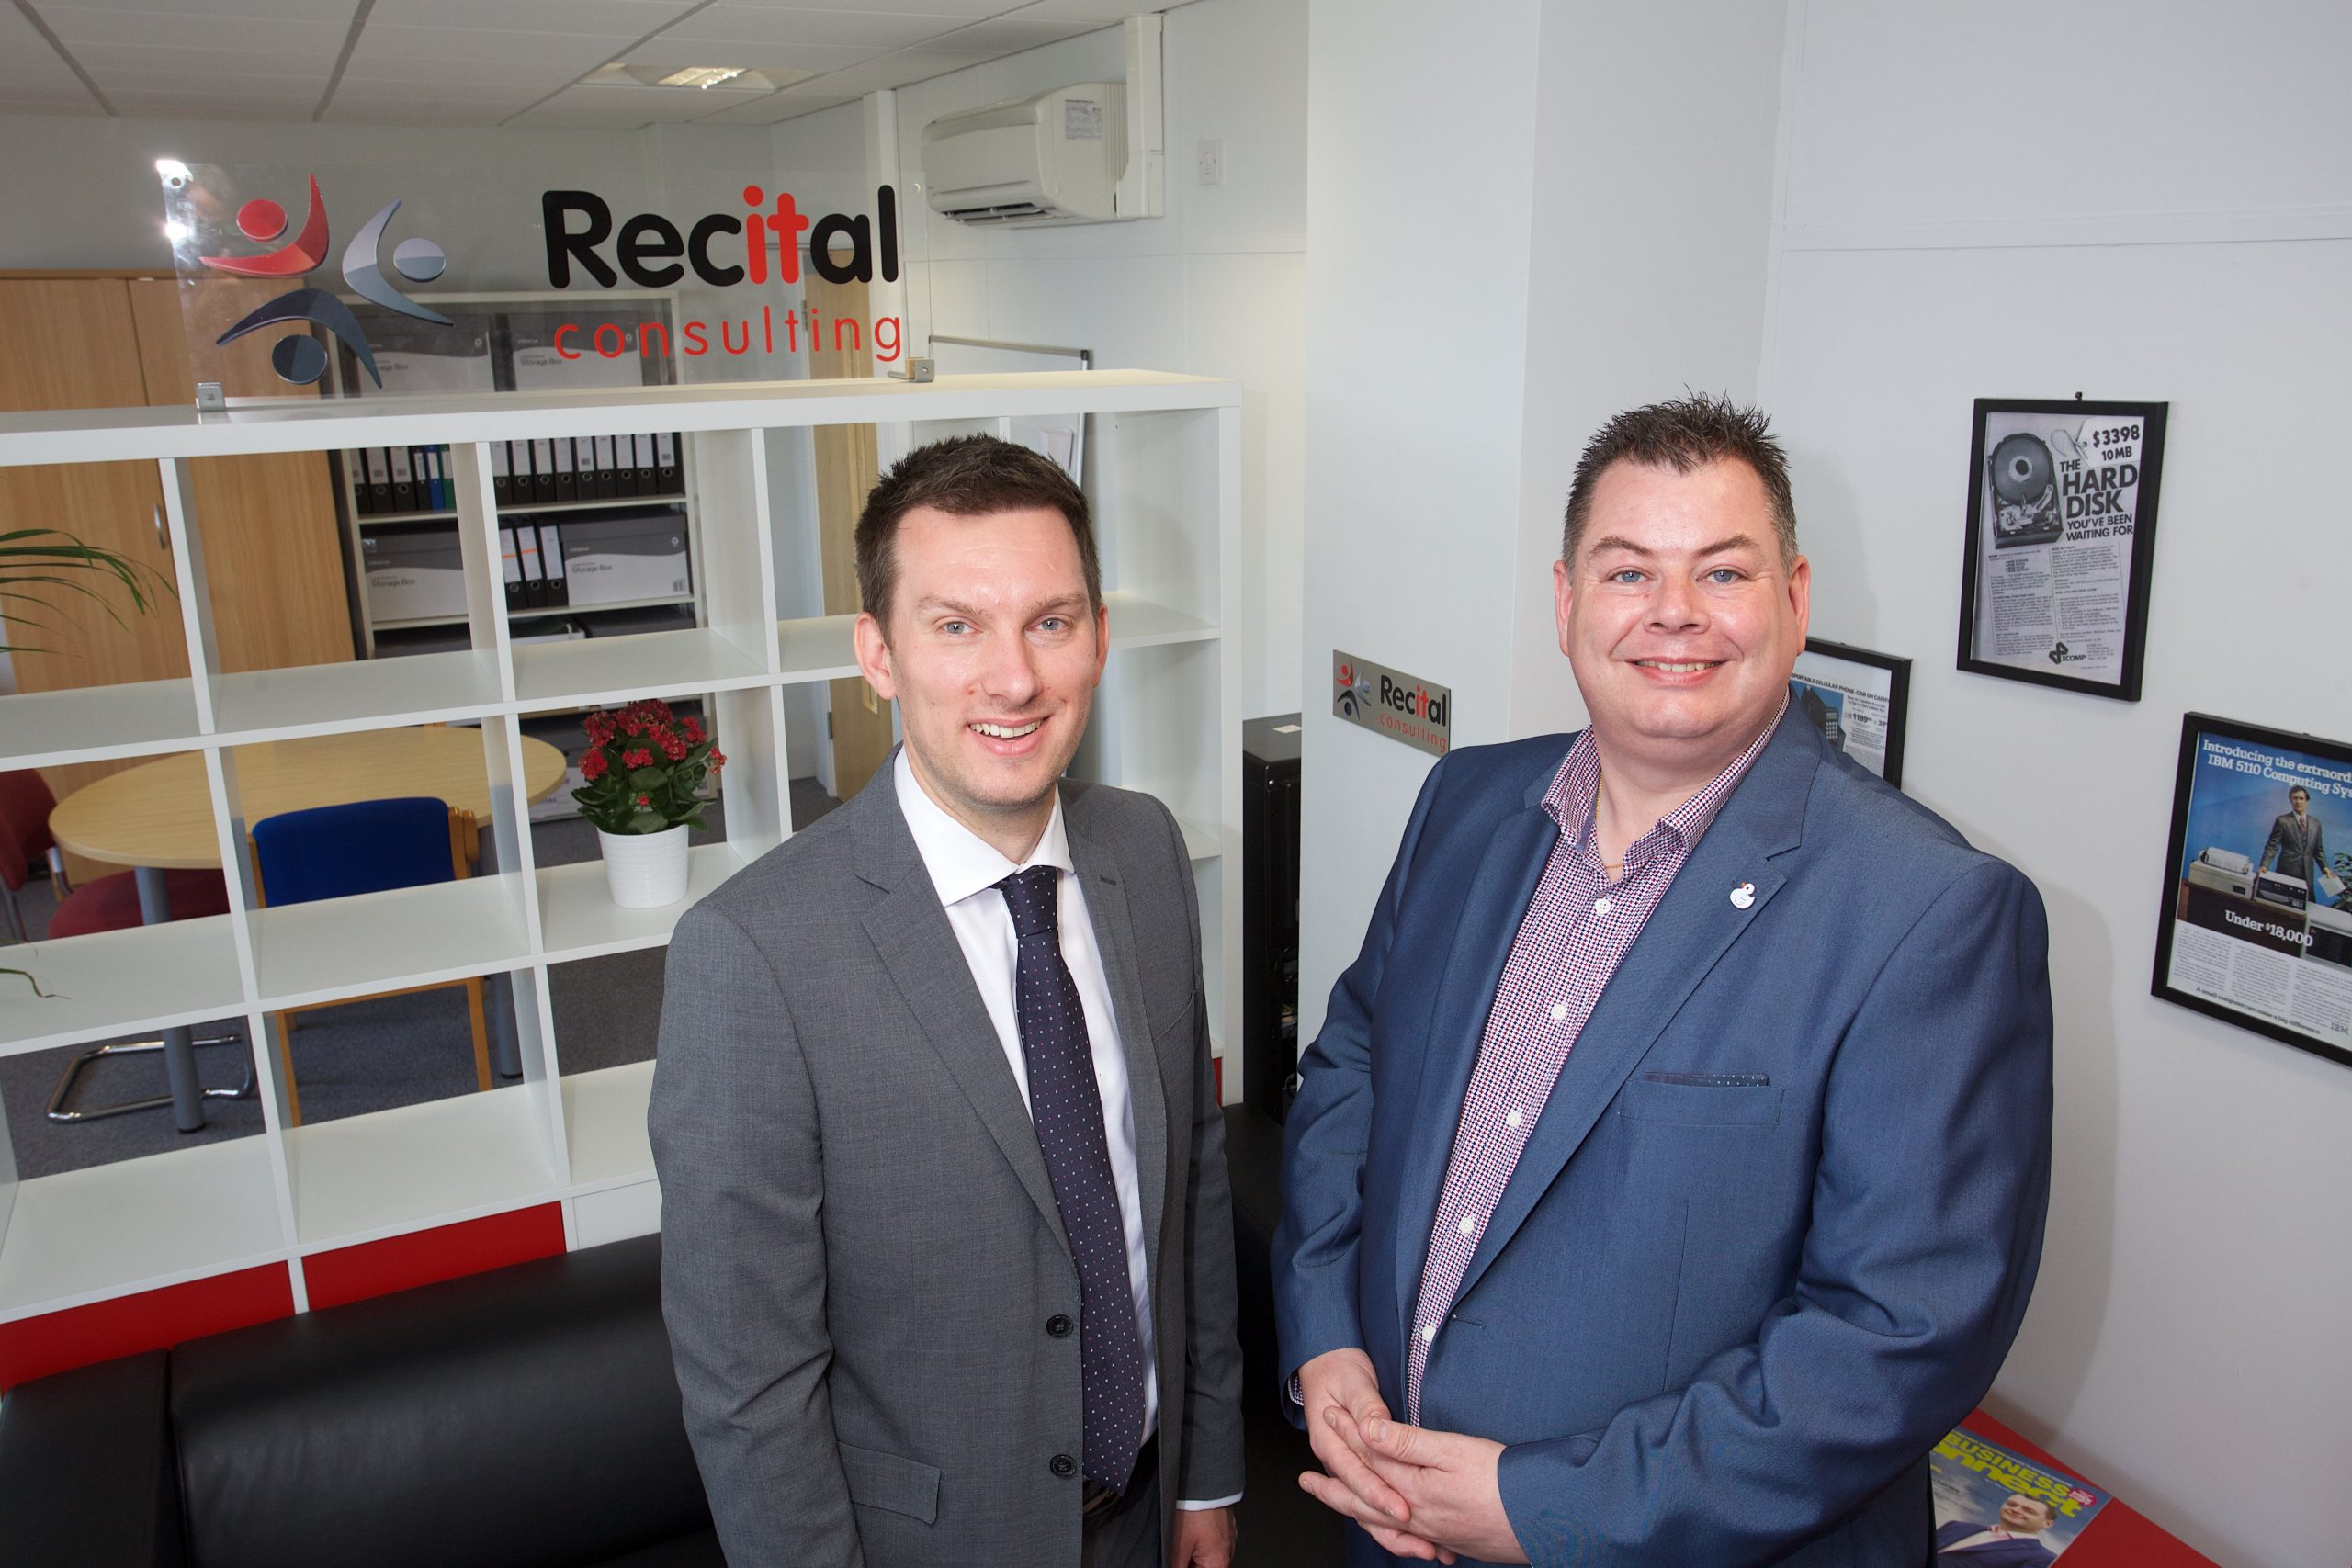 Rhys Owen, Leasing Surveyor at Orbit Developments and Allan Wroe, Managing Director of Recital Consulting